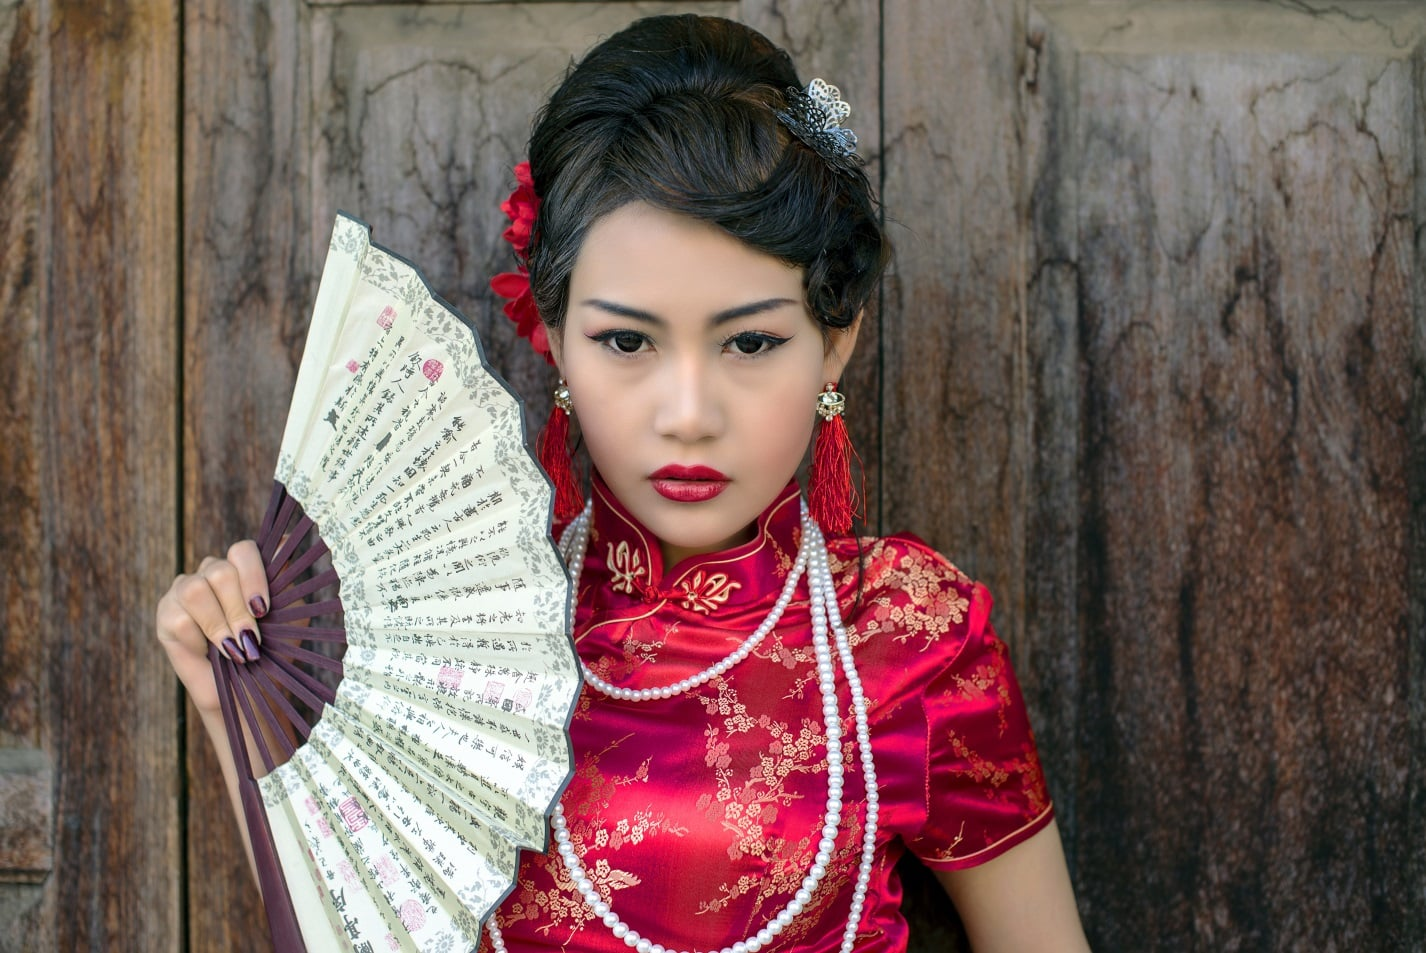 Chinese lady holding a fan, wearing red